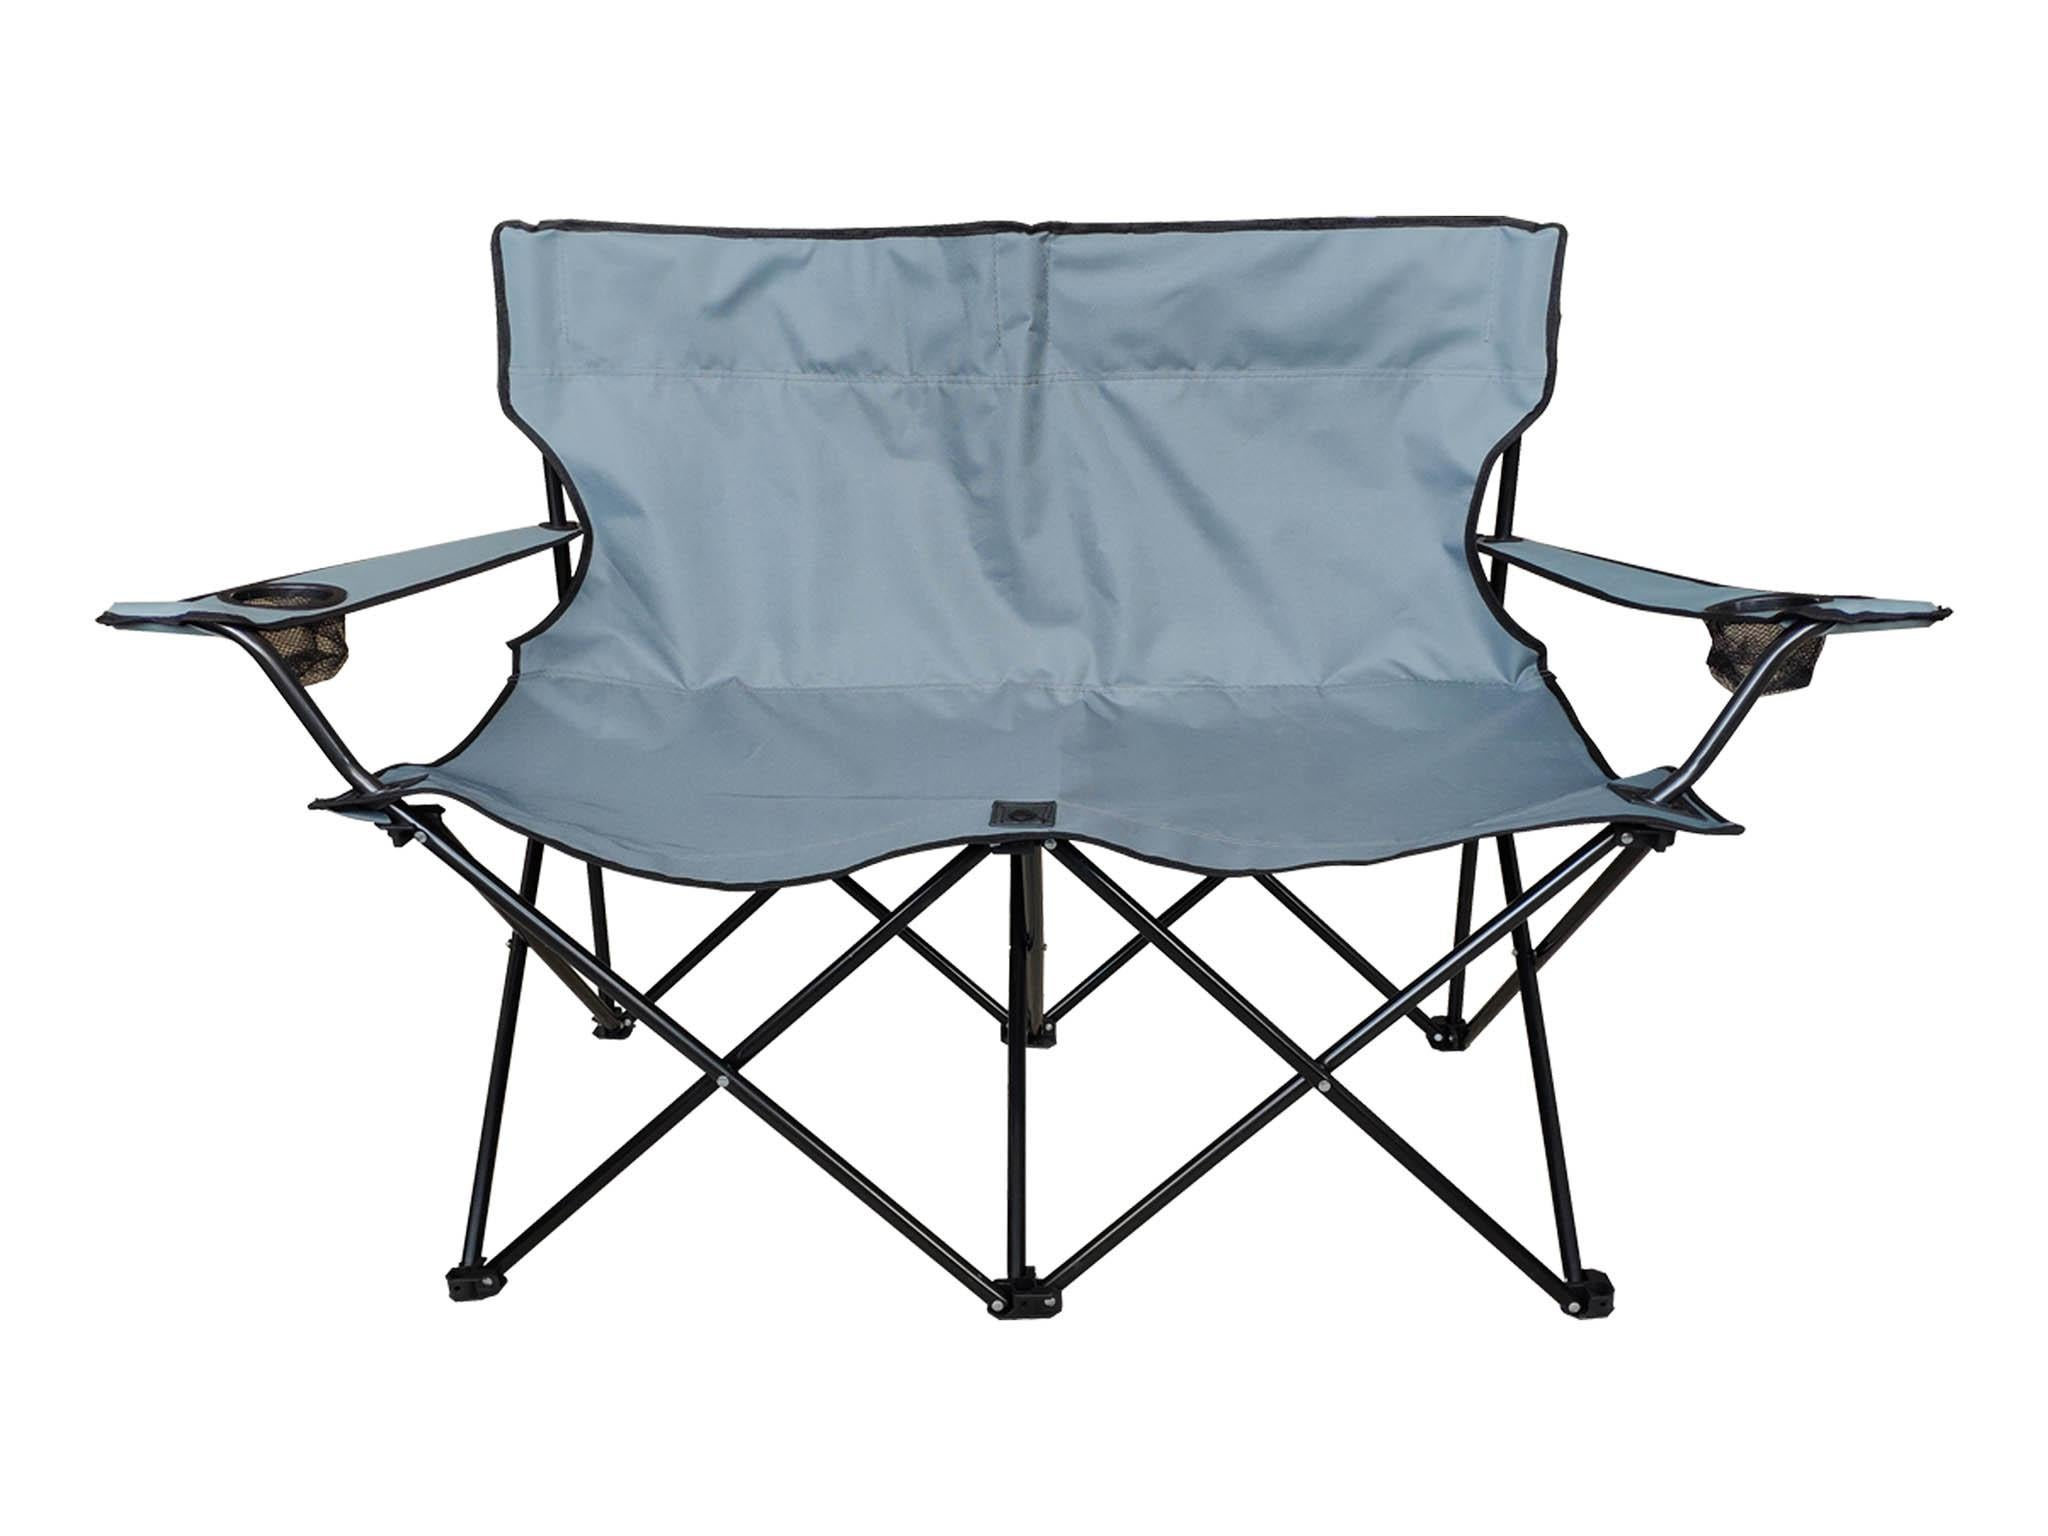 Surprising Best Camping Chairs To Suit All Your Glamping And Festival Needs Onthecornerstone Fun Painted Chair Ideas Images Onthecornerstoneorg